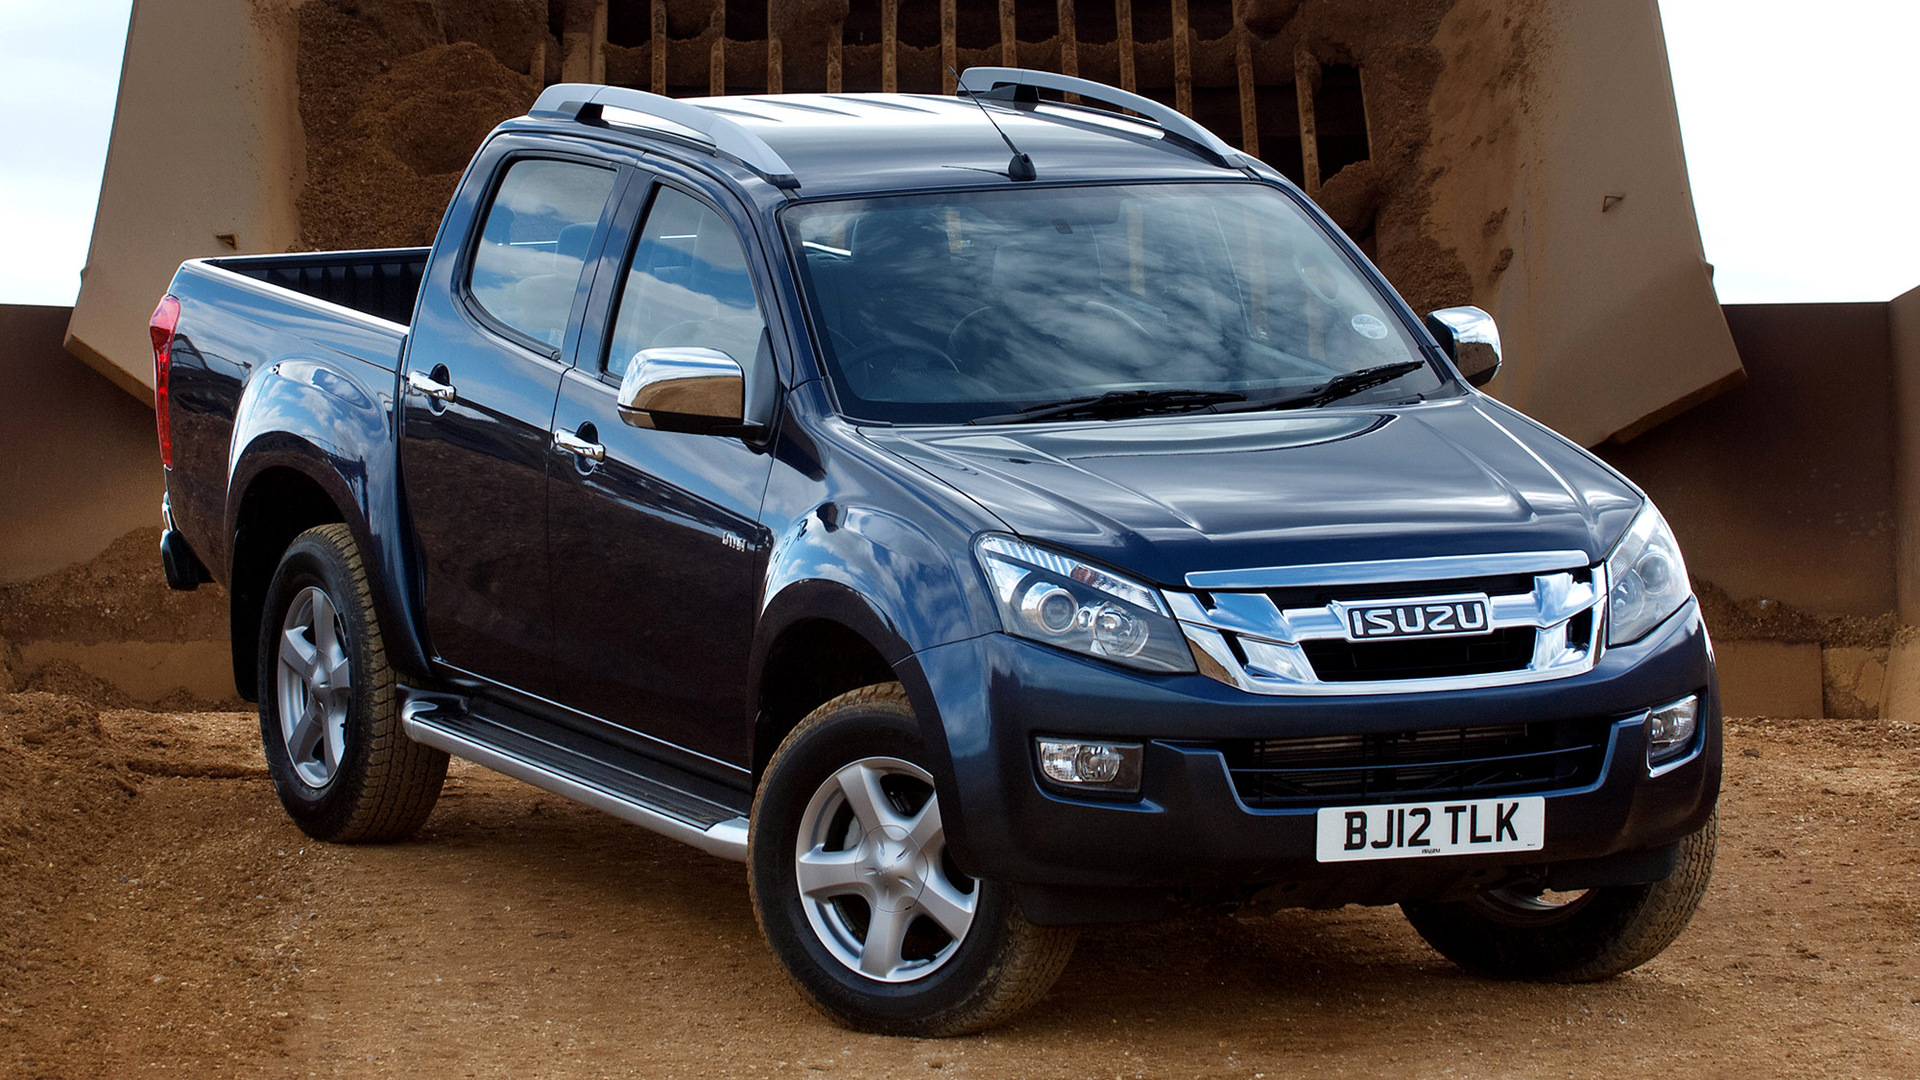 2012 Isuzu D-Max Double Cab (UK) - Wallpapers and HD ...